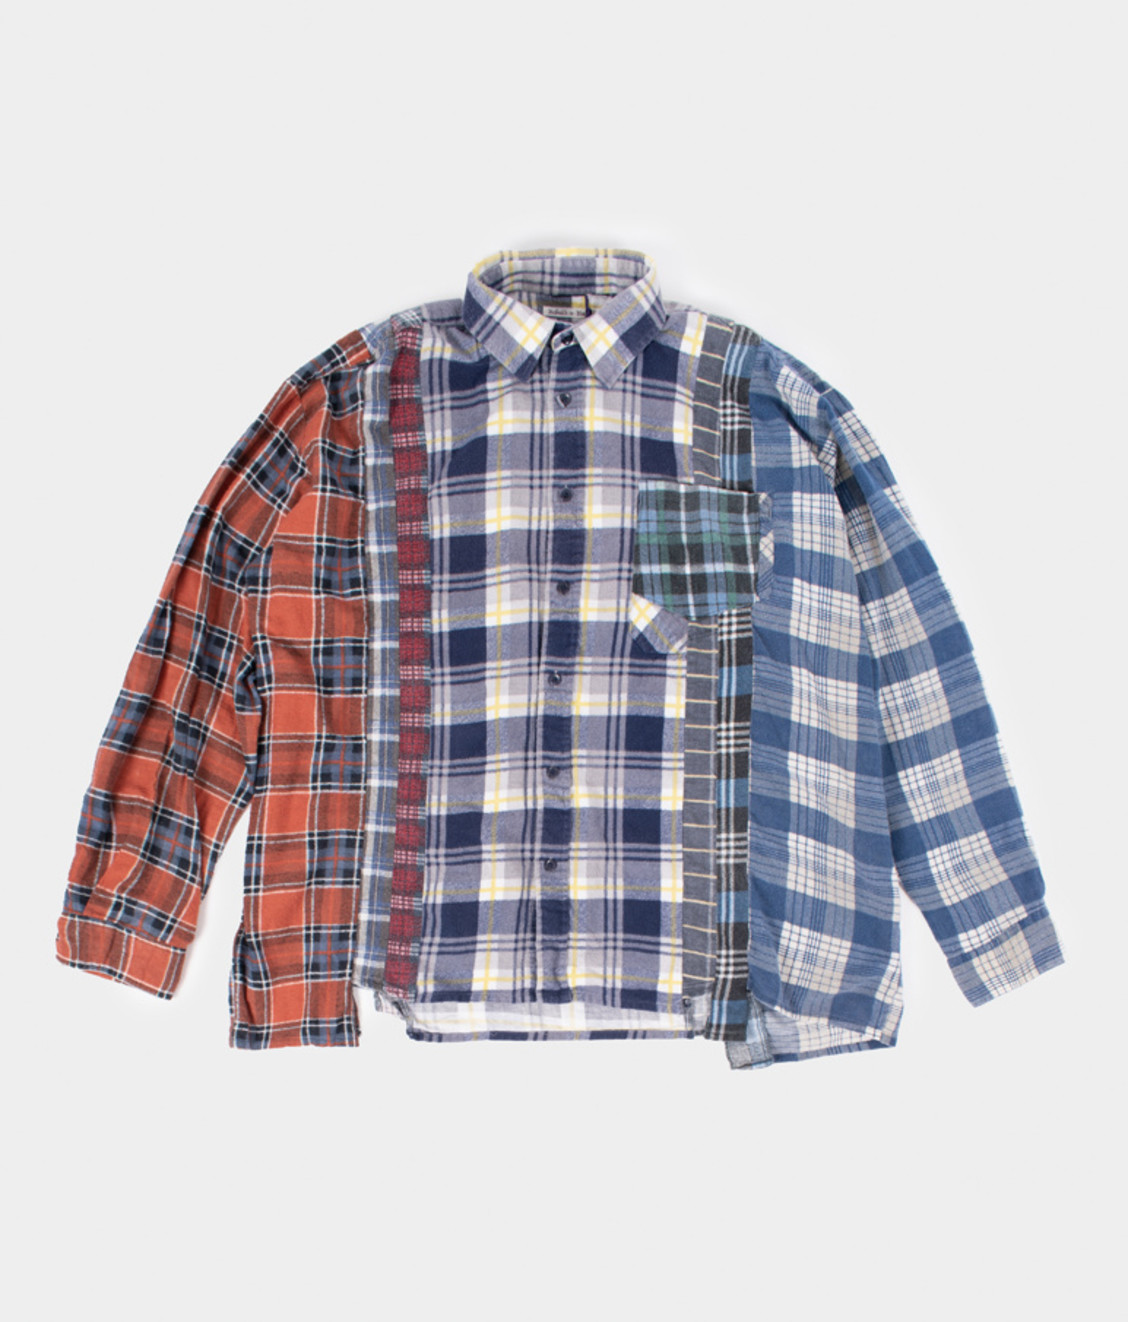 Needles Rebuild by Needles Flannel Shirt 7 Cuts Shirt Wide